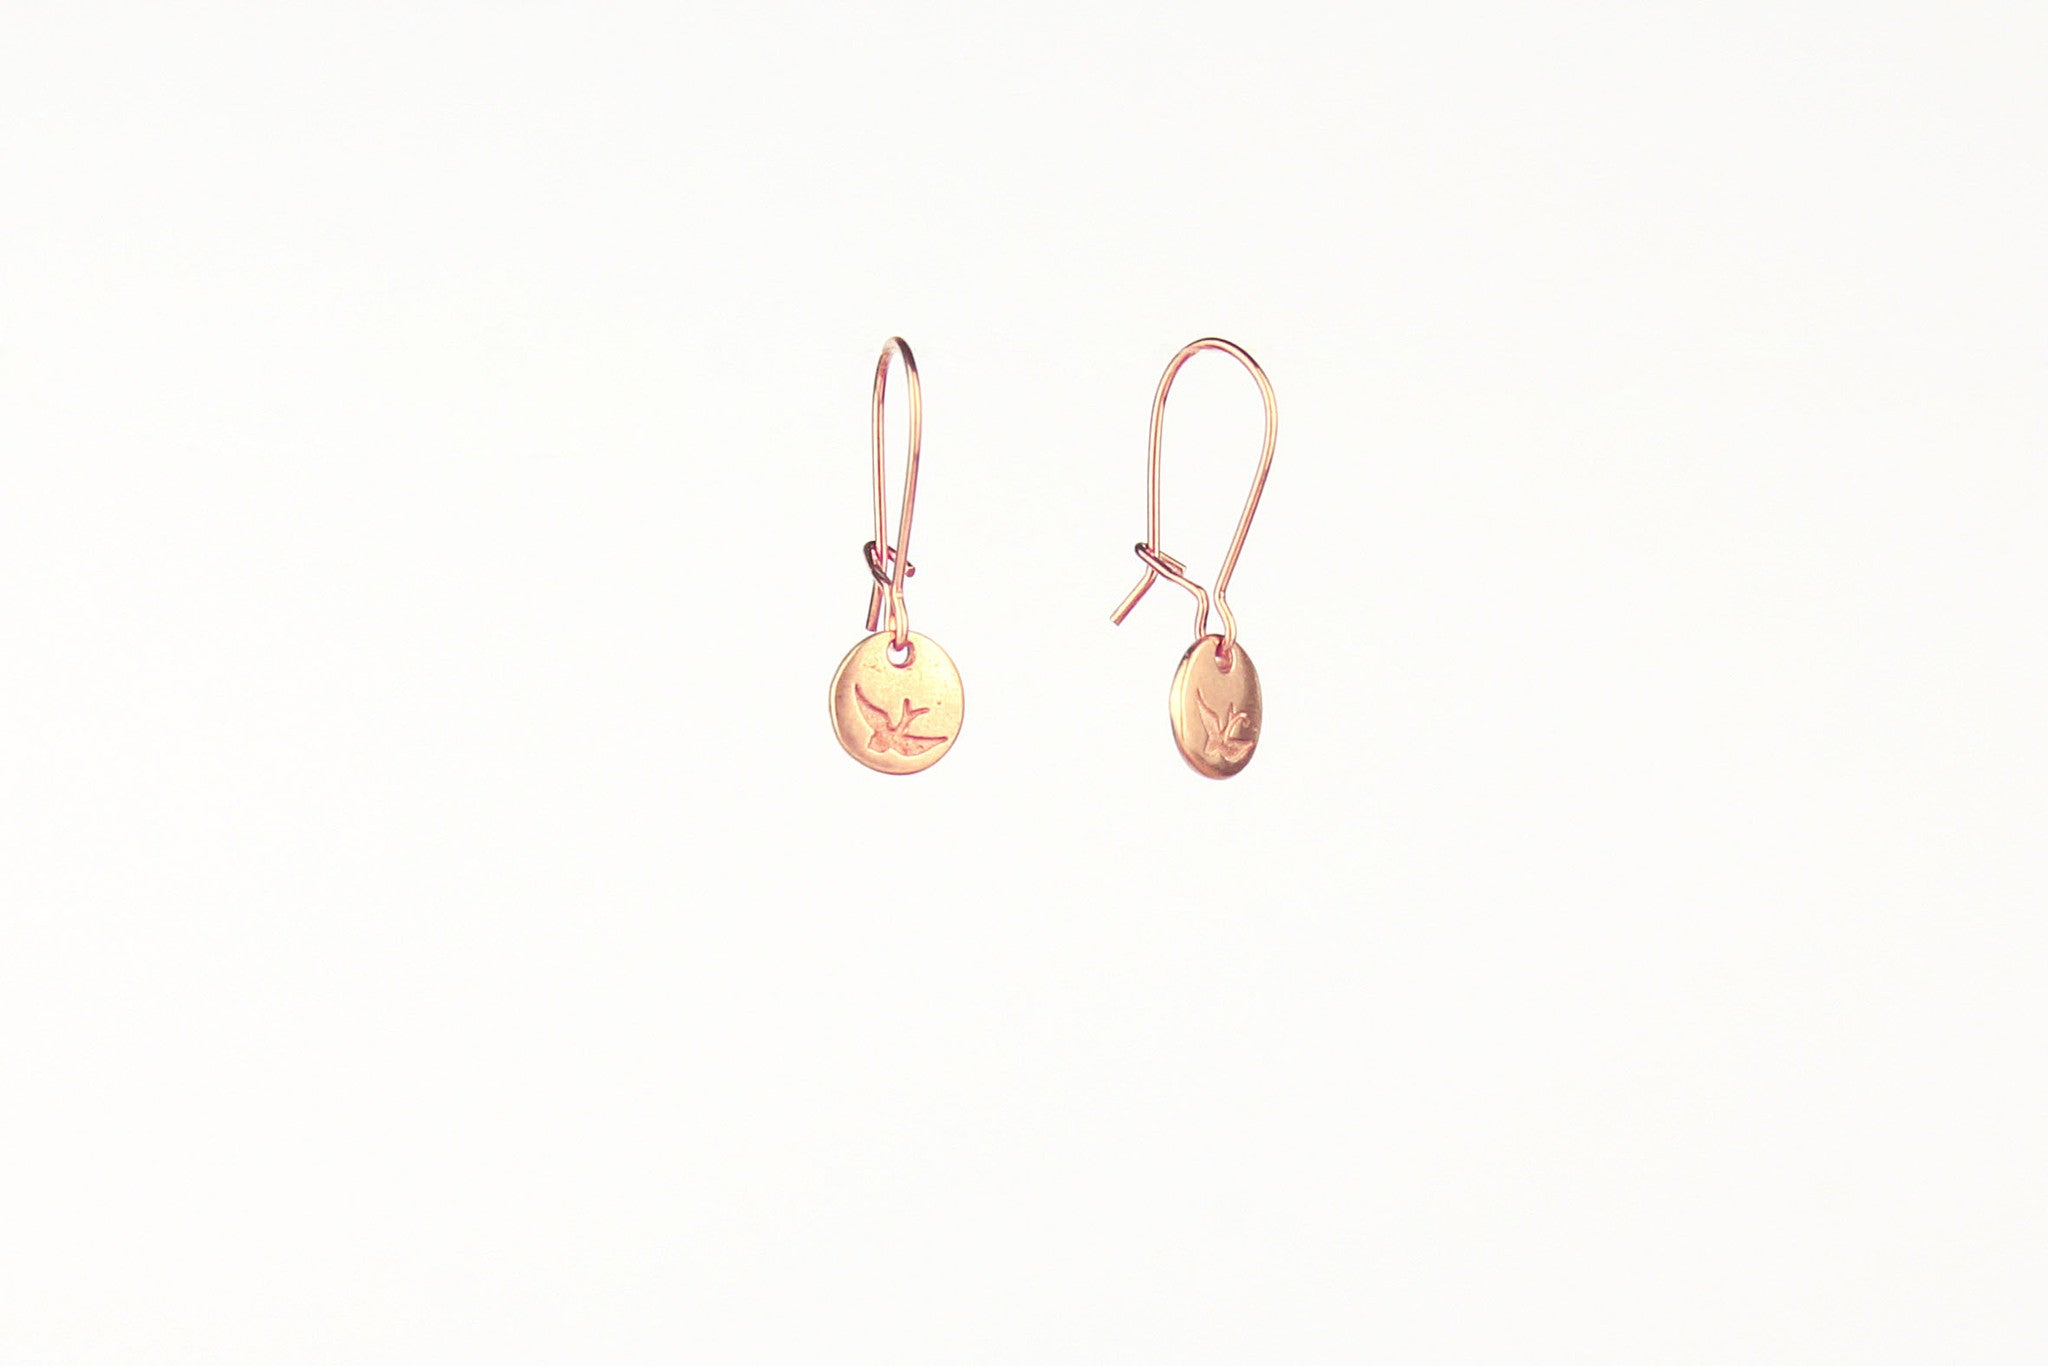 jewelberry ohrringe earrings bird token red gold plated sterling silver fine jewelry handmade with love fairtrade